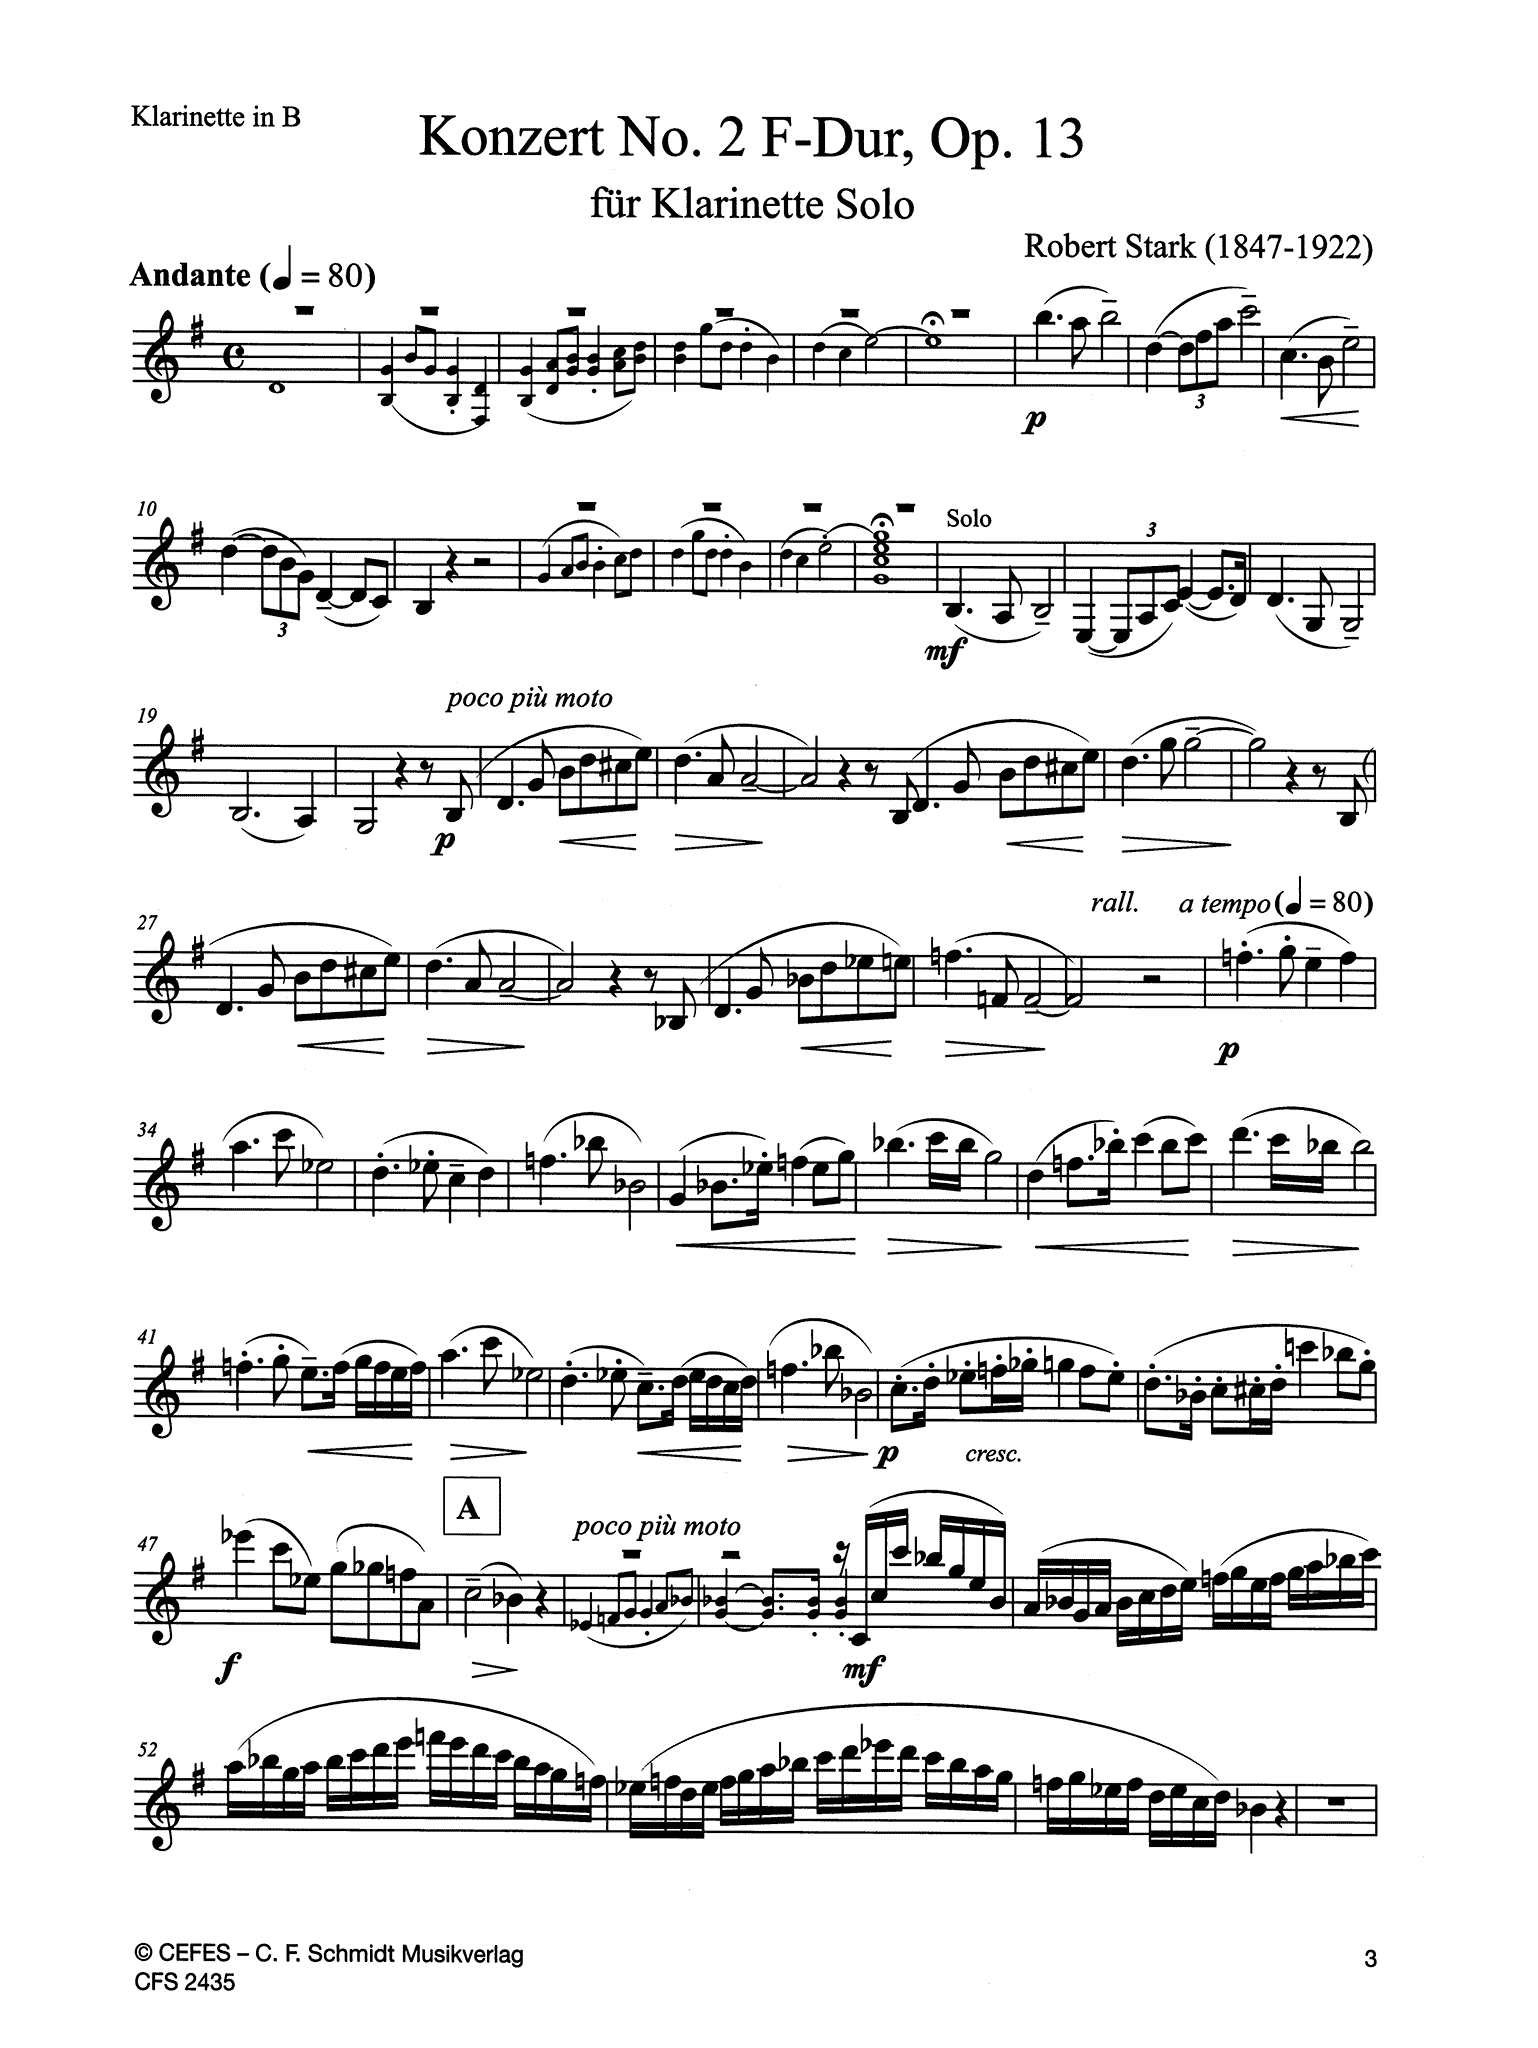 Clarinet Concerto No. 2 in F Major, Op. 13 Clarinet part